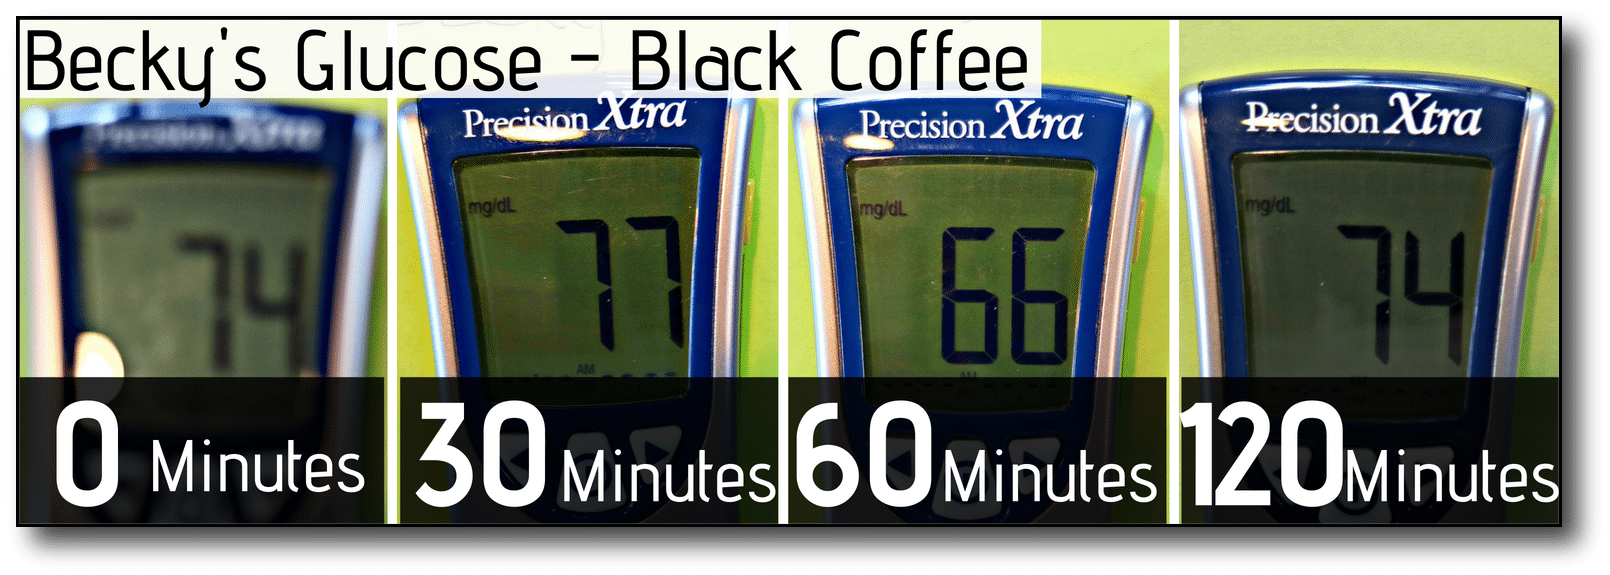 coffee and intermittent fasting-becky glucose black coffee